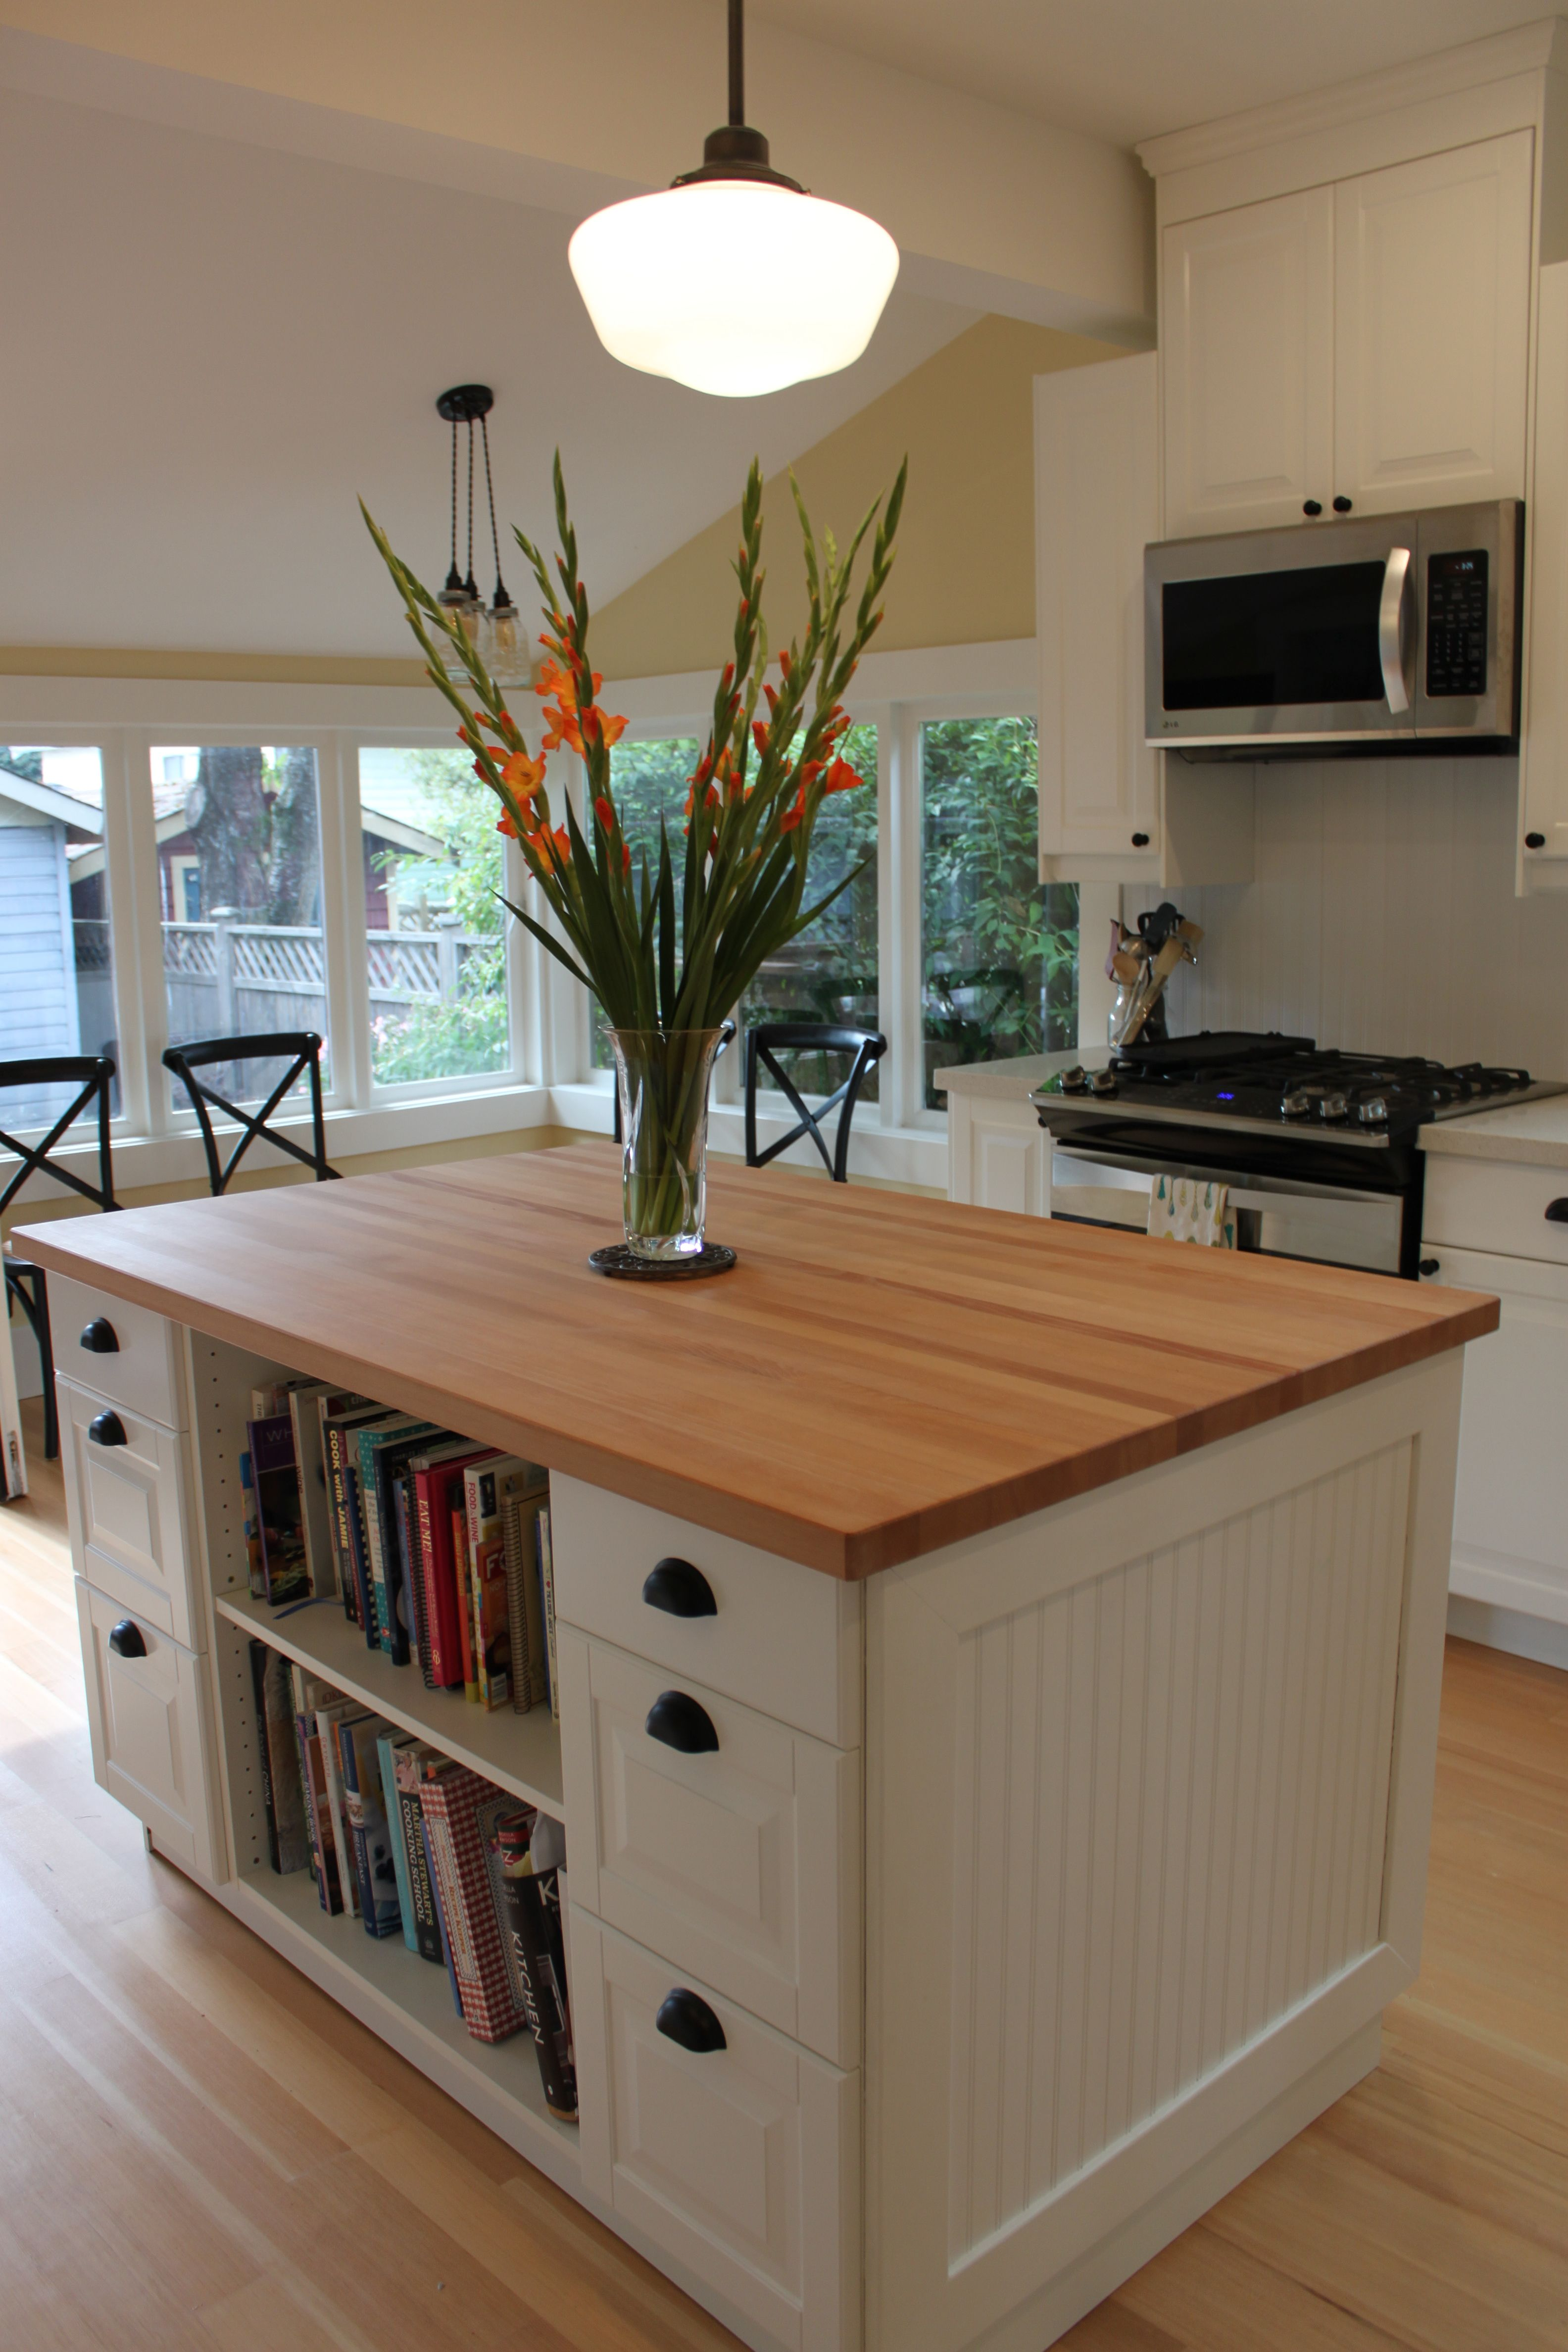 Kitchen Islands Ikea Freestanding Cabinets Island Images Google Search Dream Home